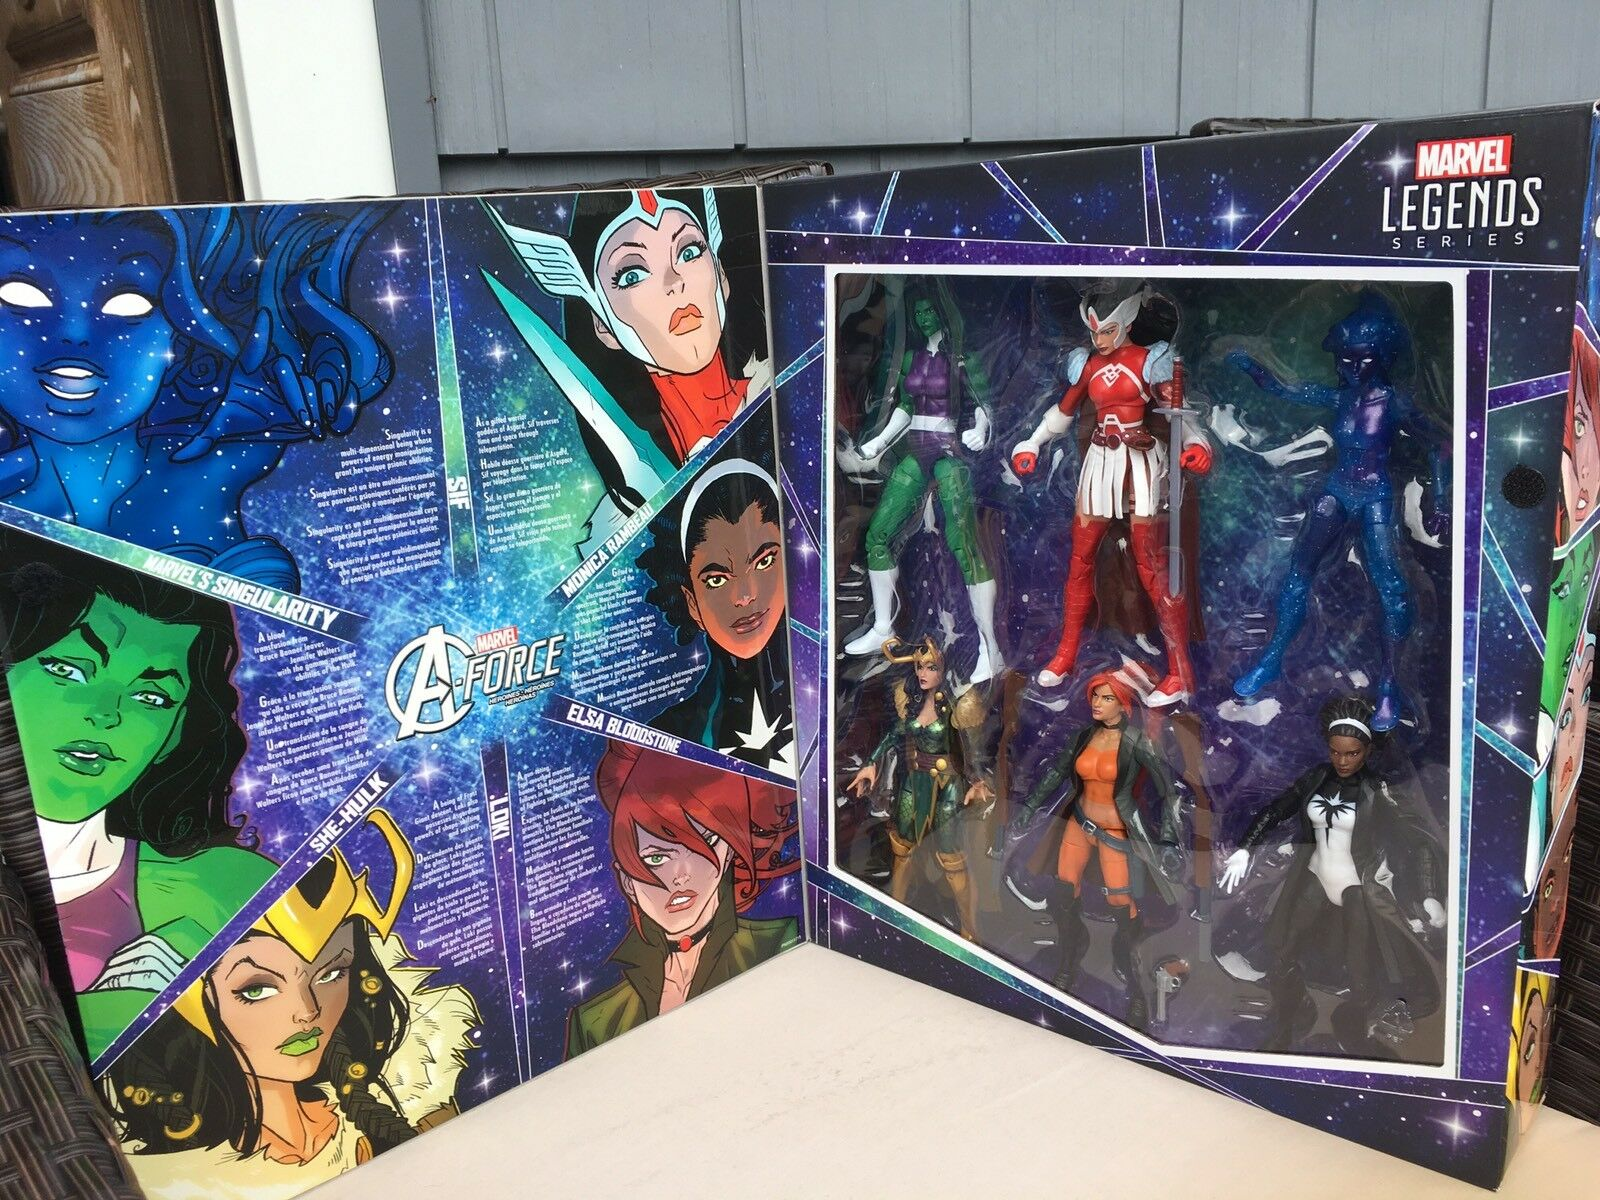 SDCC 2017 Marvel Legends Series A-FORCE Eroine 6-Pack giocattoli'R Us Exclusive